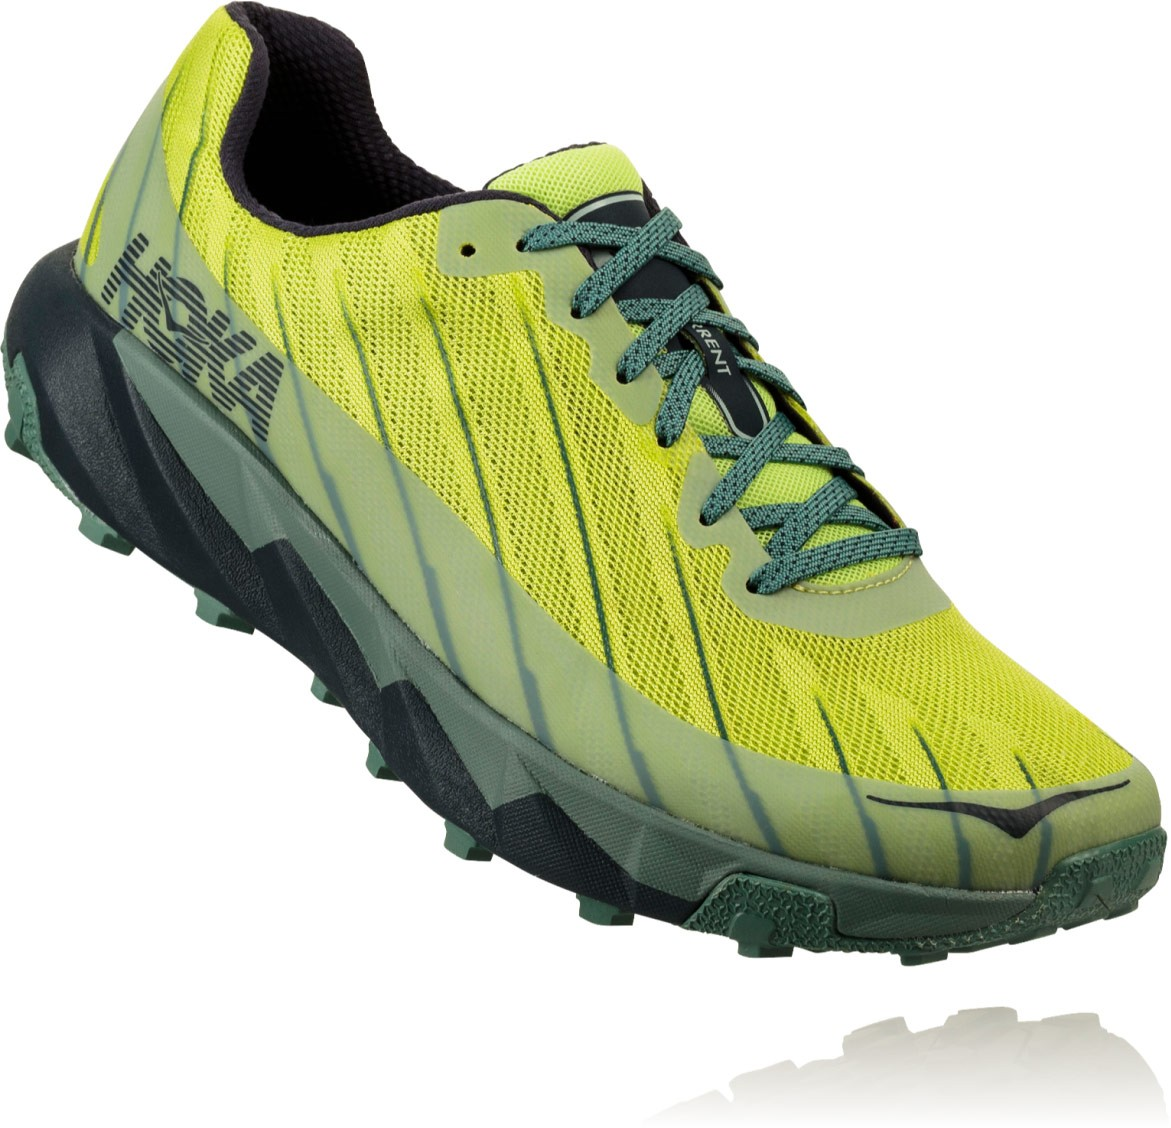 Hoka One One Torrent   Blister Gear Review - Skis ...